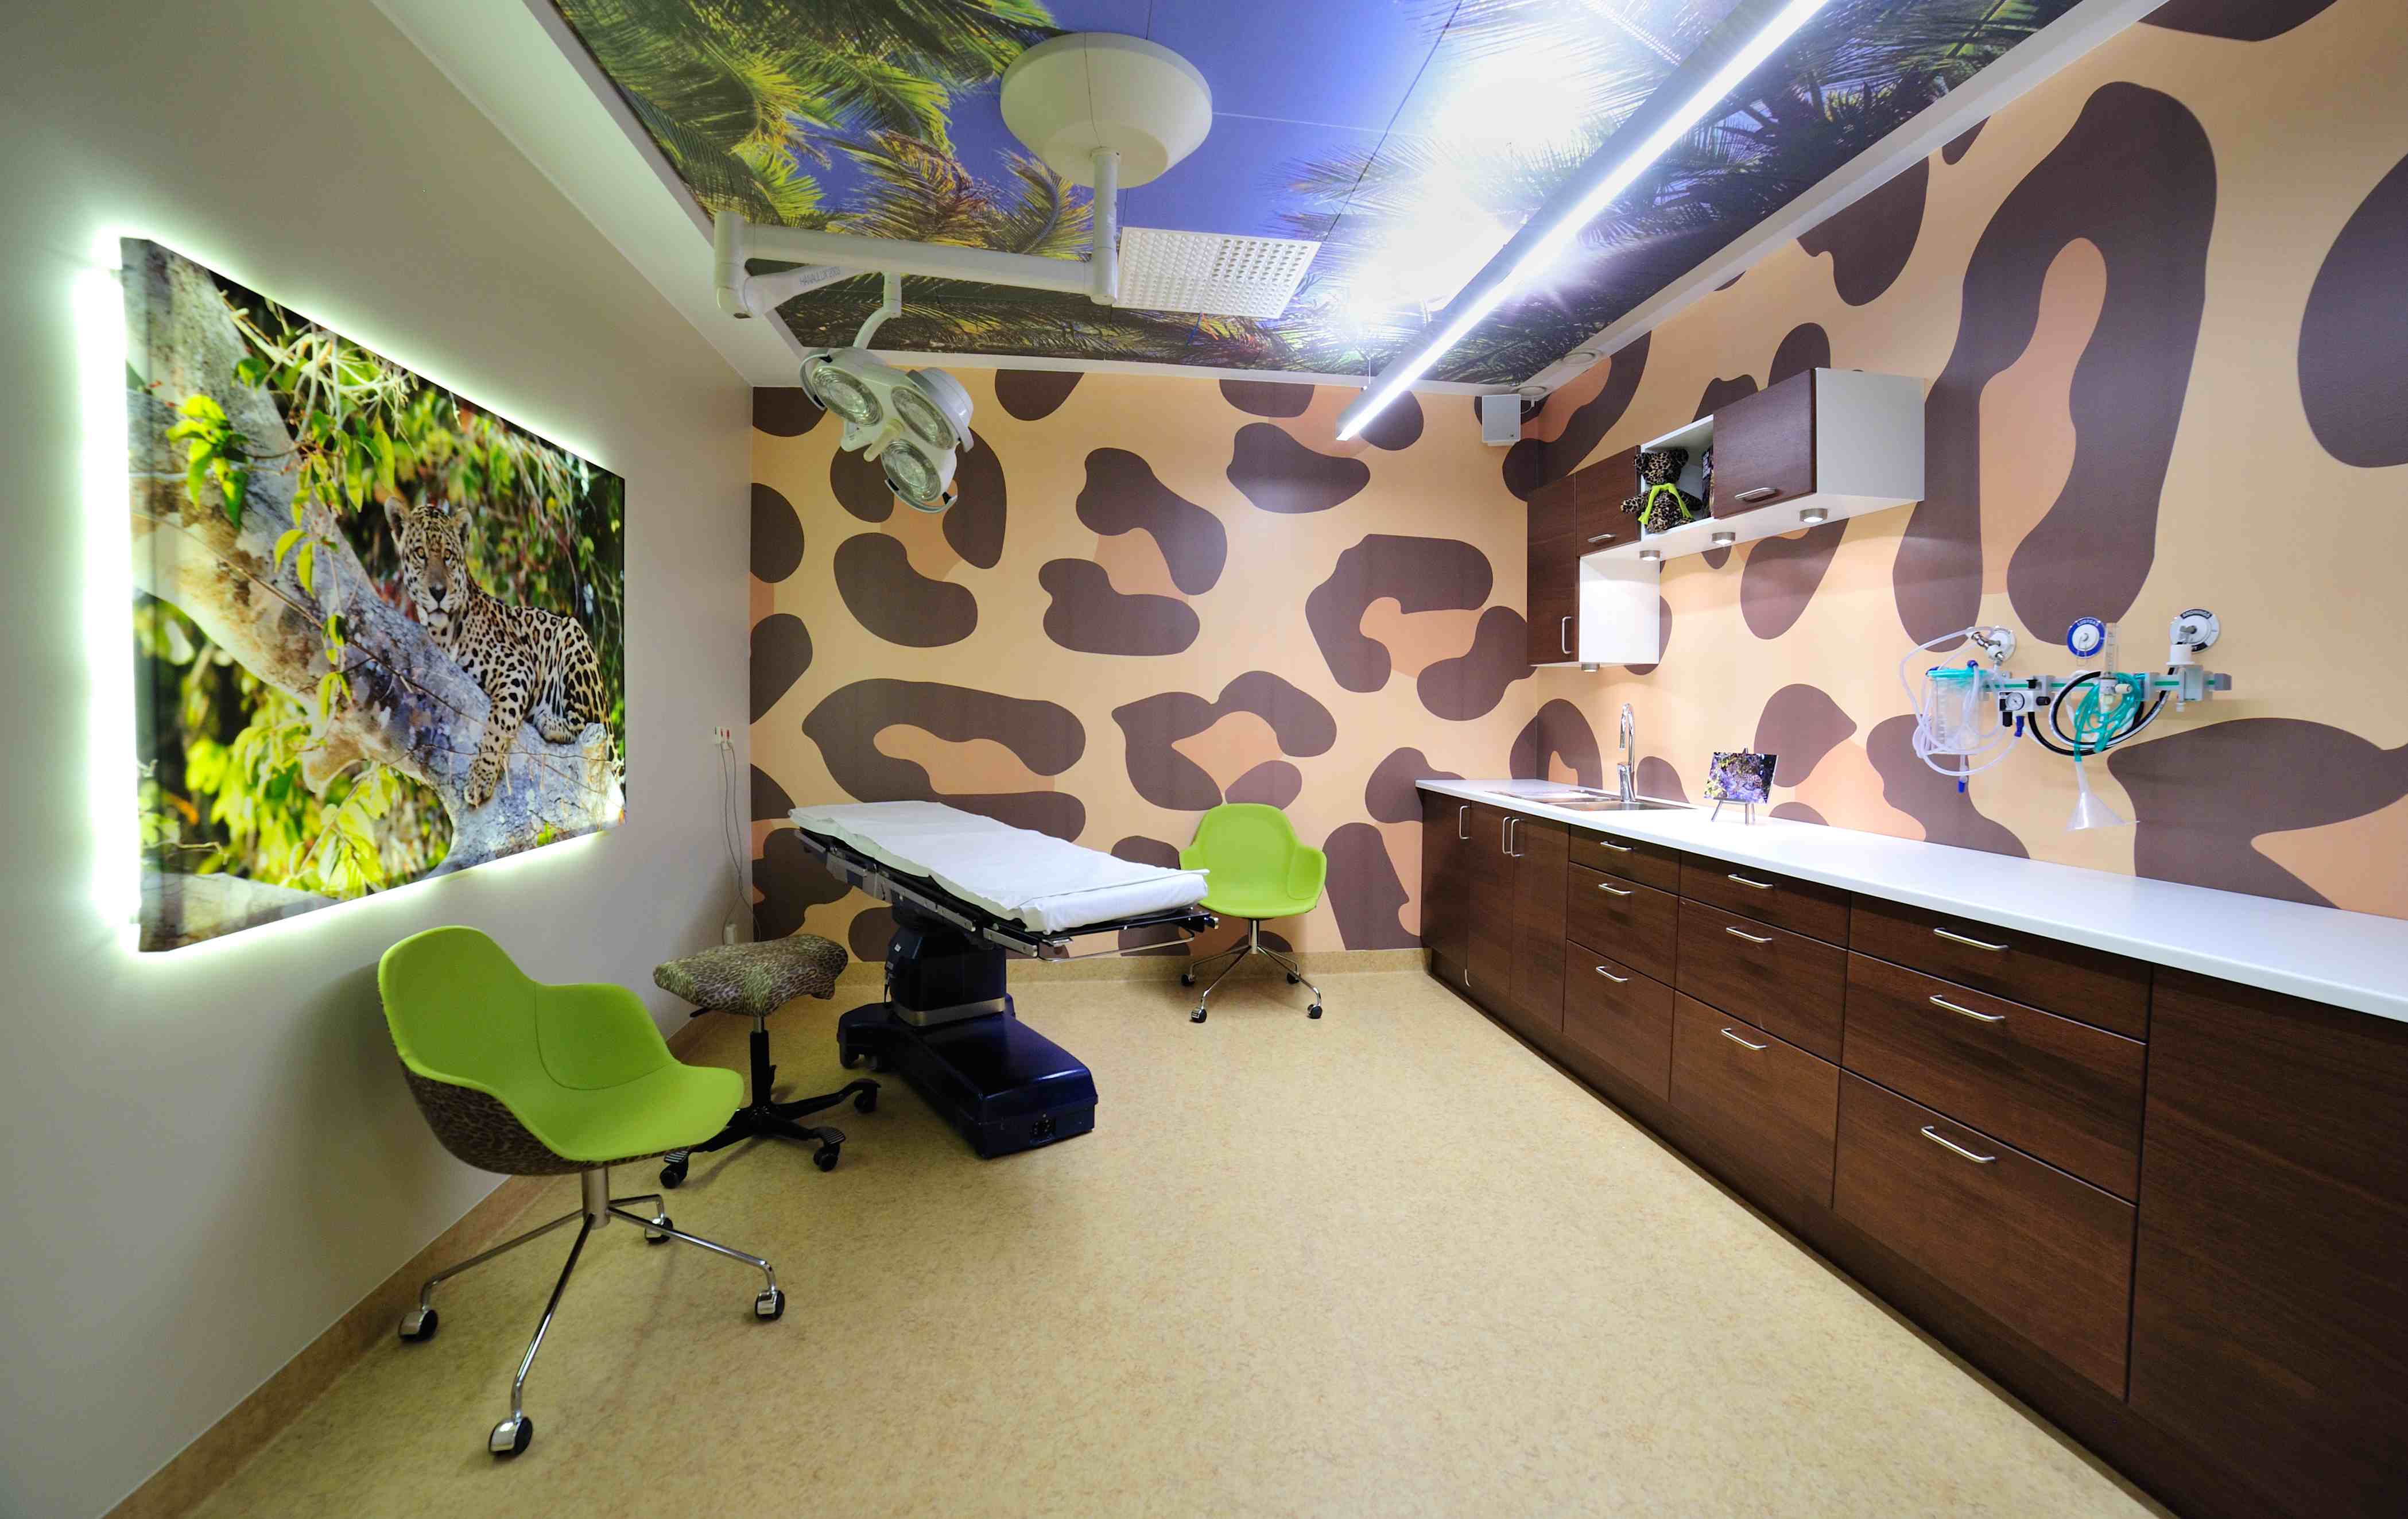 How The Latest Healthcare Design Trends Impact The